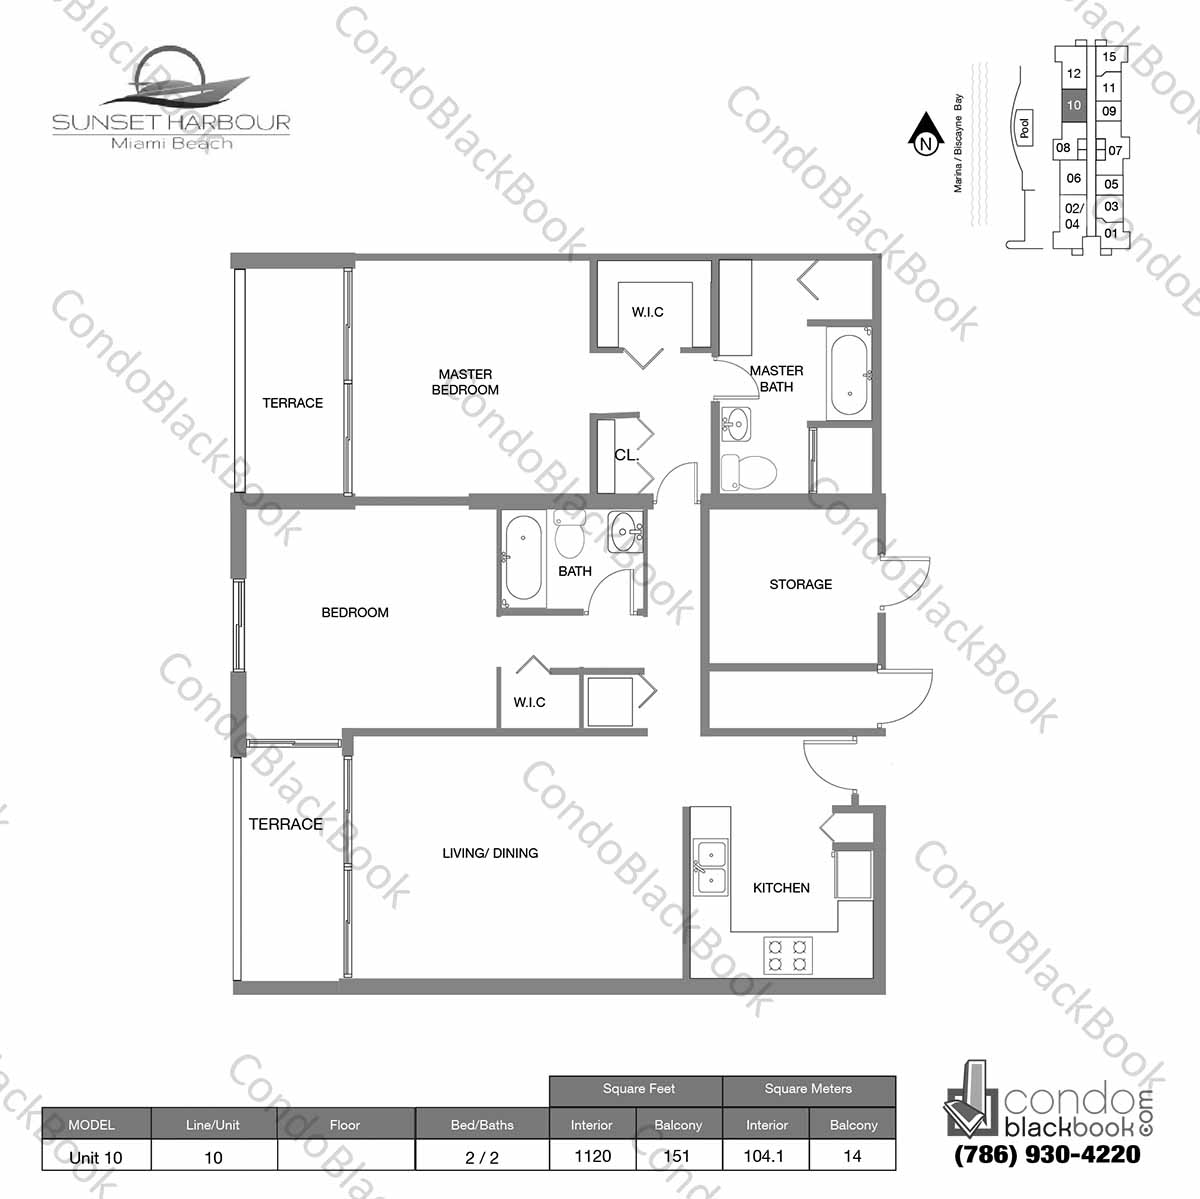 Floor plan for Sunset Harbour South Beach Miami Beach, model Unit 10, line 10S, 2 / 2 bedrooms, 1120 sq ft